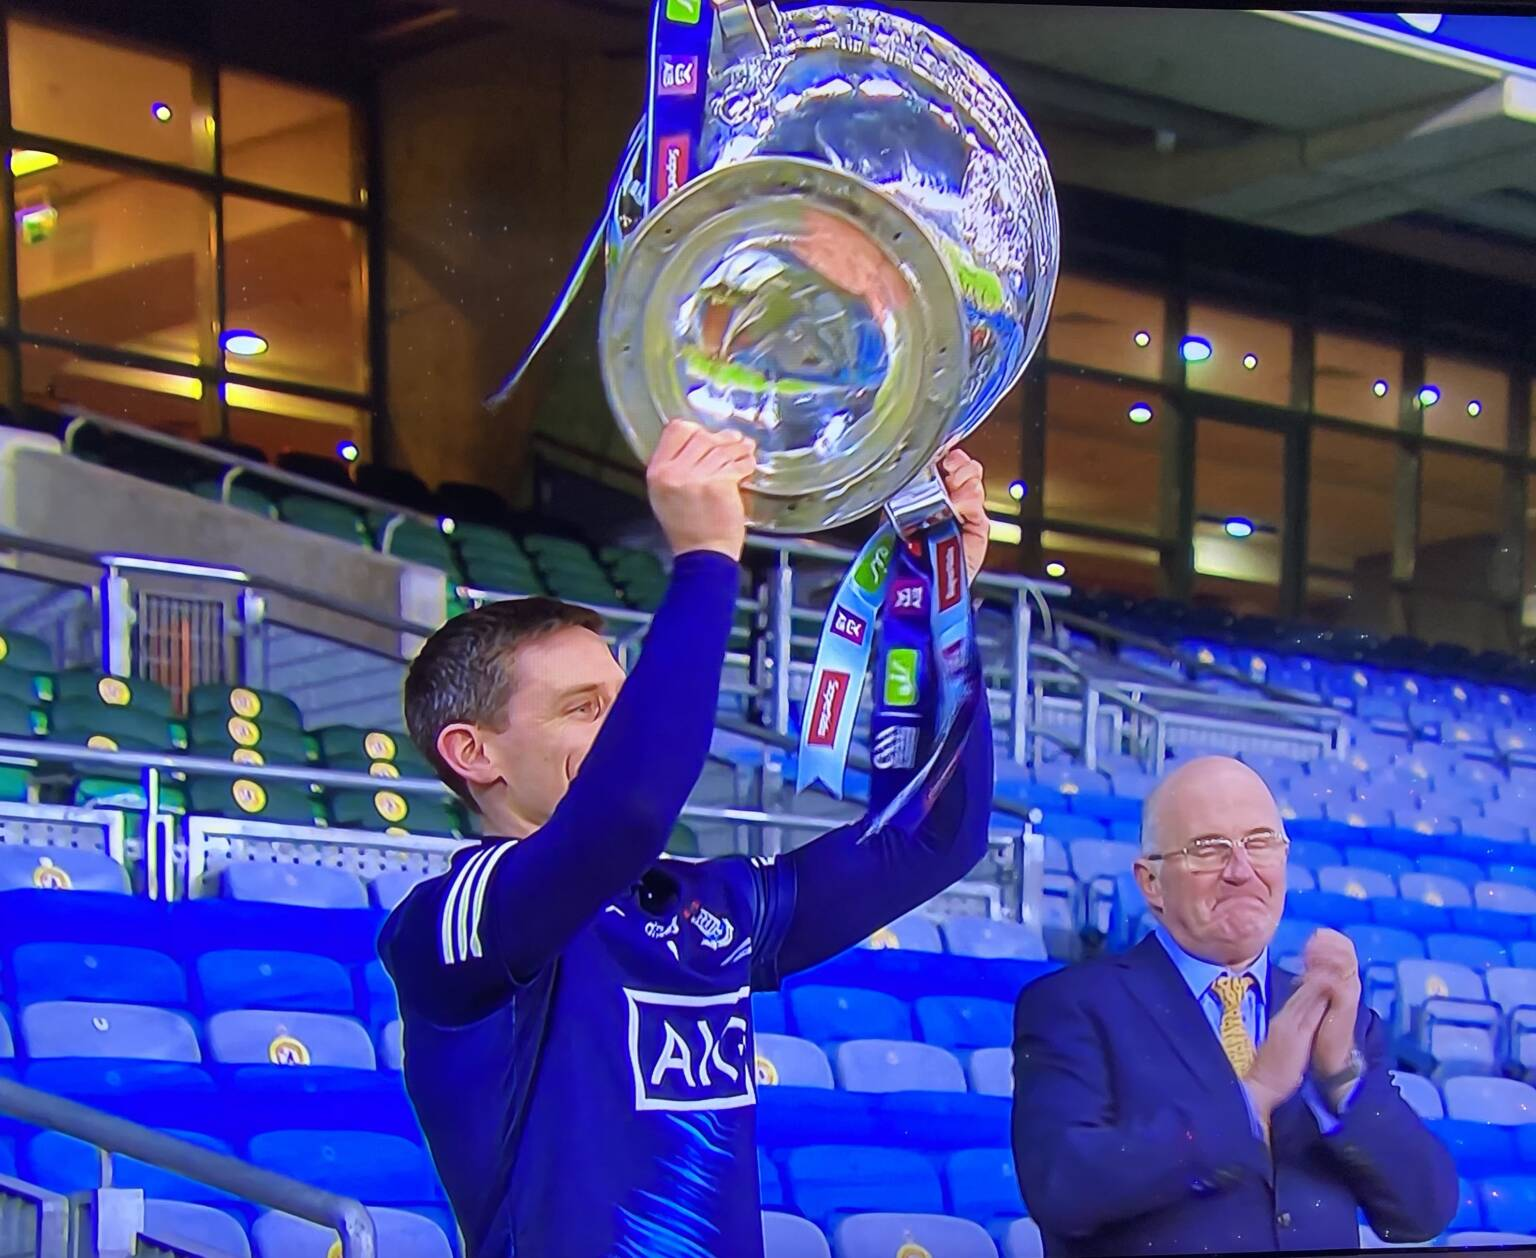 Dublin captain Stephen Cluxton lifts the Sam Maguire cup as Dublin are crowned six-in-a-row champions